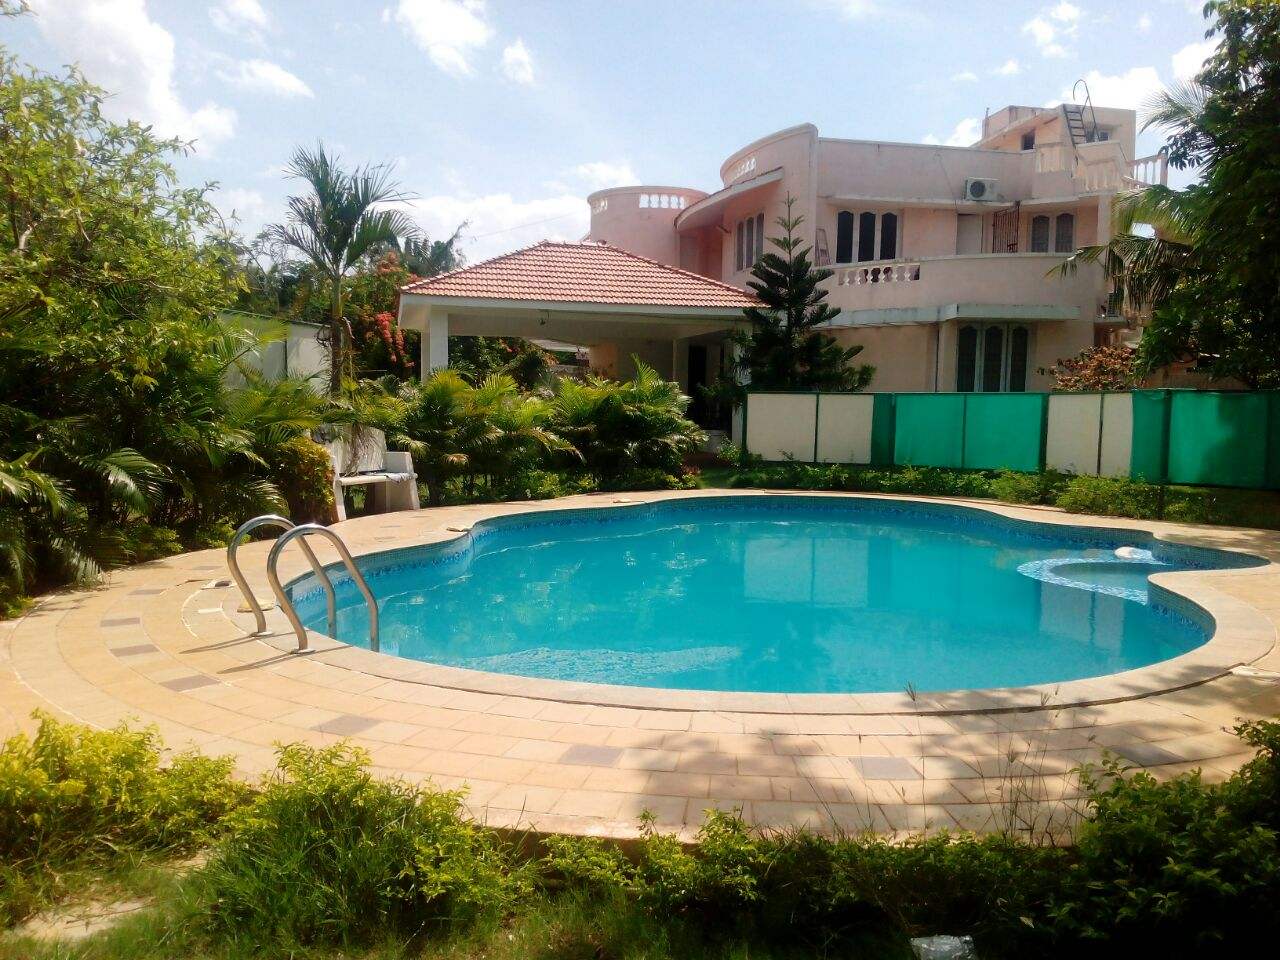 Beach house one day rent mobile no 9381017742 by apple beach house and resorts low price for Ecr beach resorts with swimming pool prices